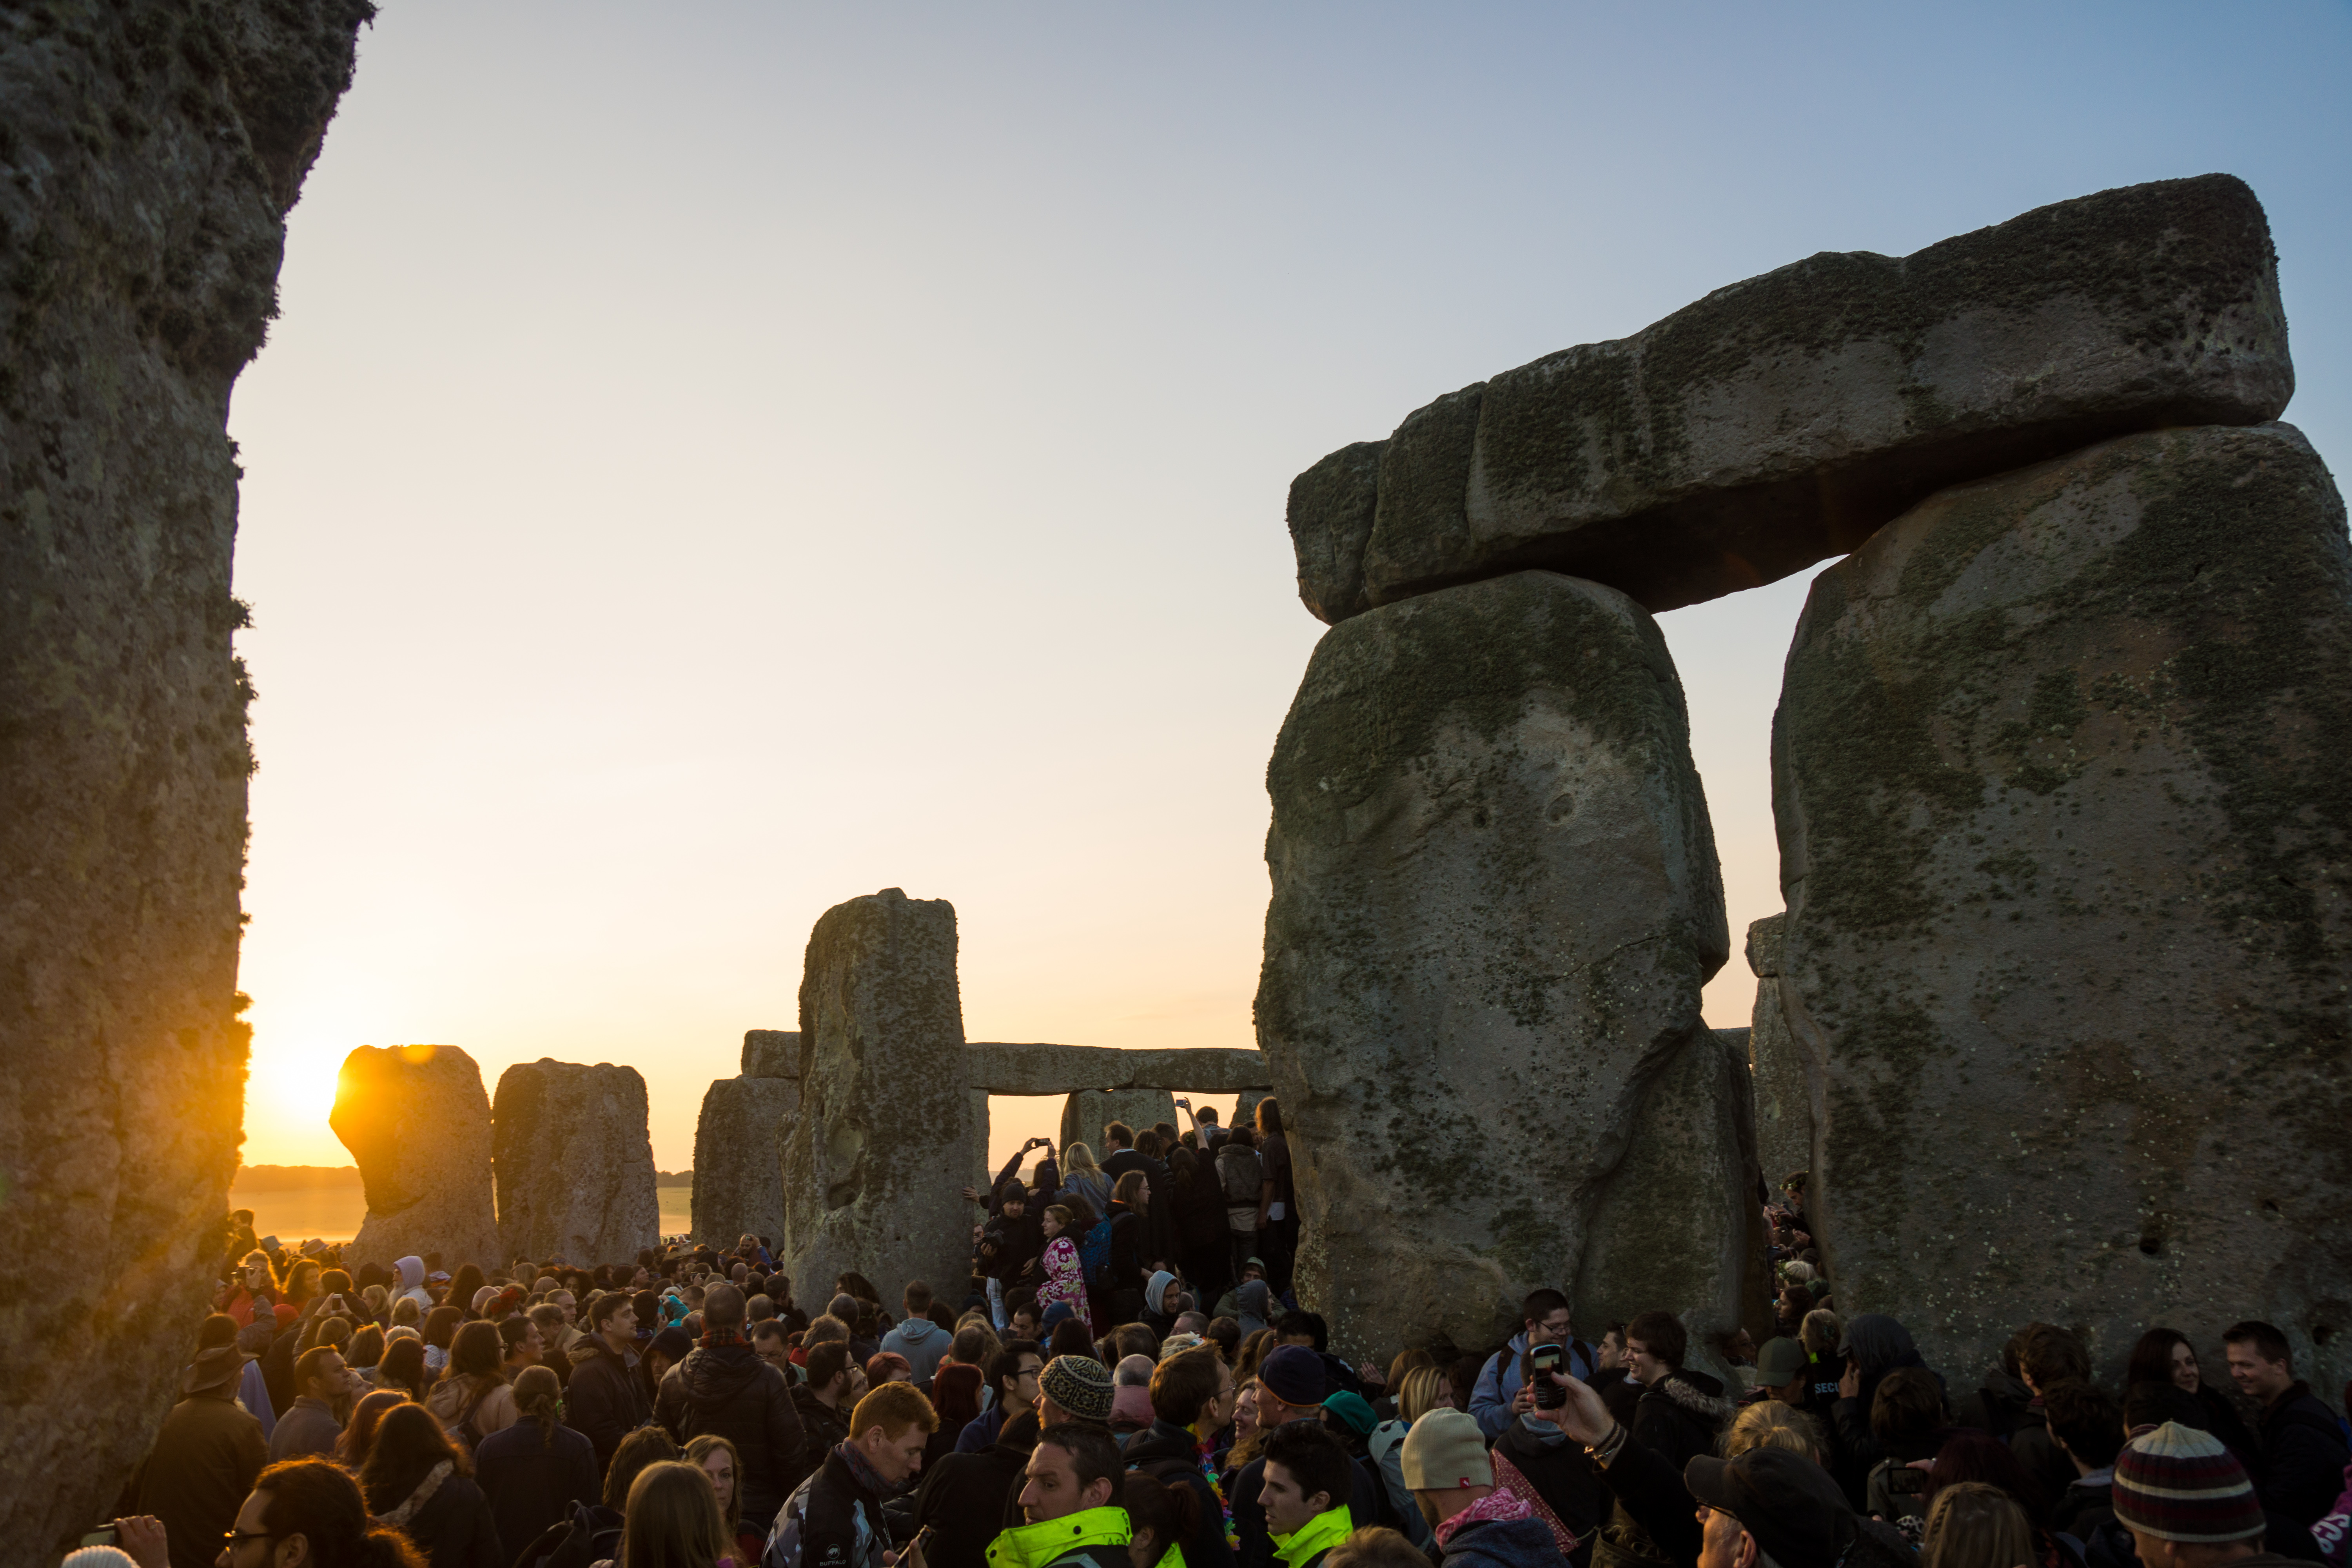 I will write an article about this place a little bit later, but going to Stonehenge during the solstice is seriously the only time you should go...the experience i had there was absolutely amazing!